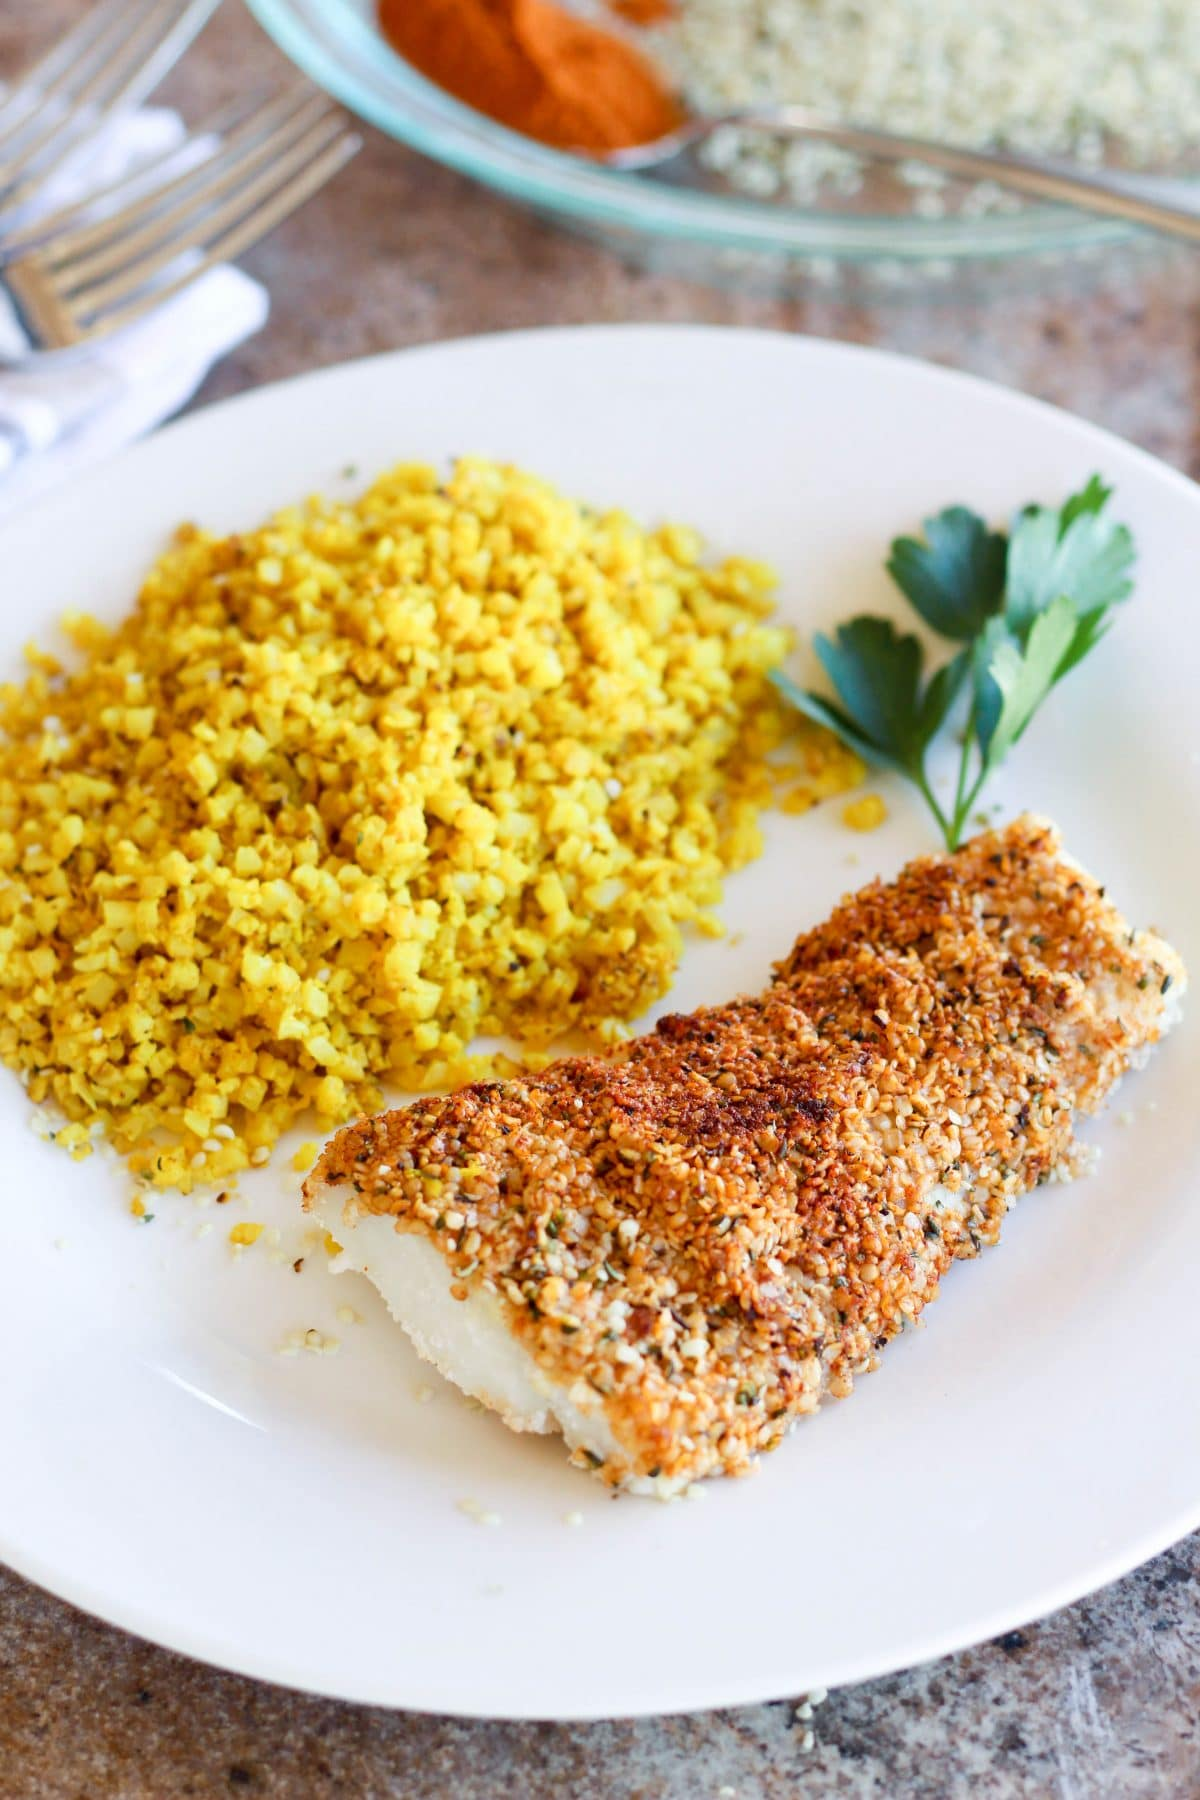 Hempseed Crusted Baked Cod recipe via www.hungryhobby.net